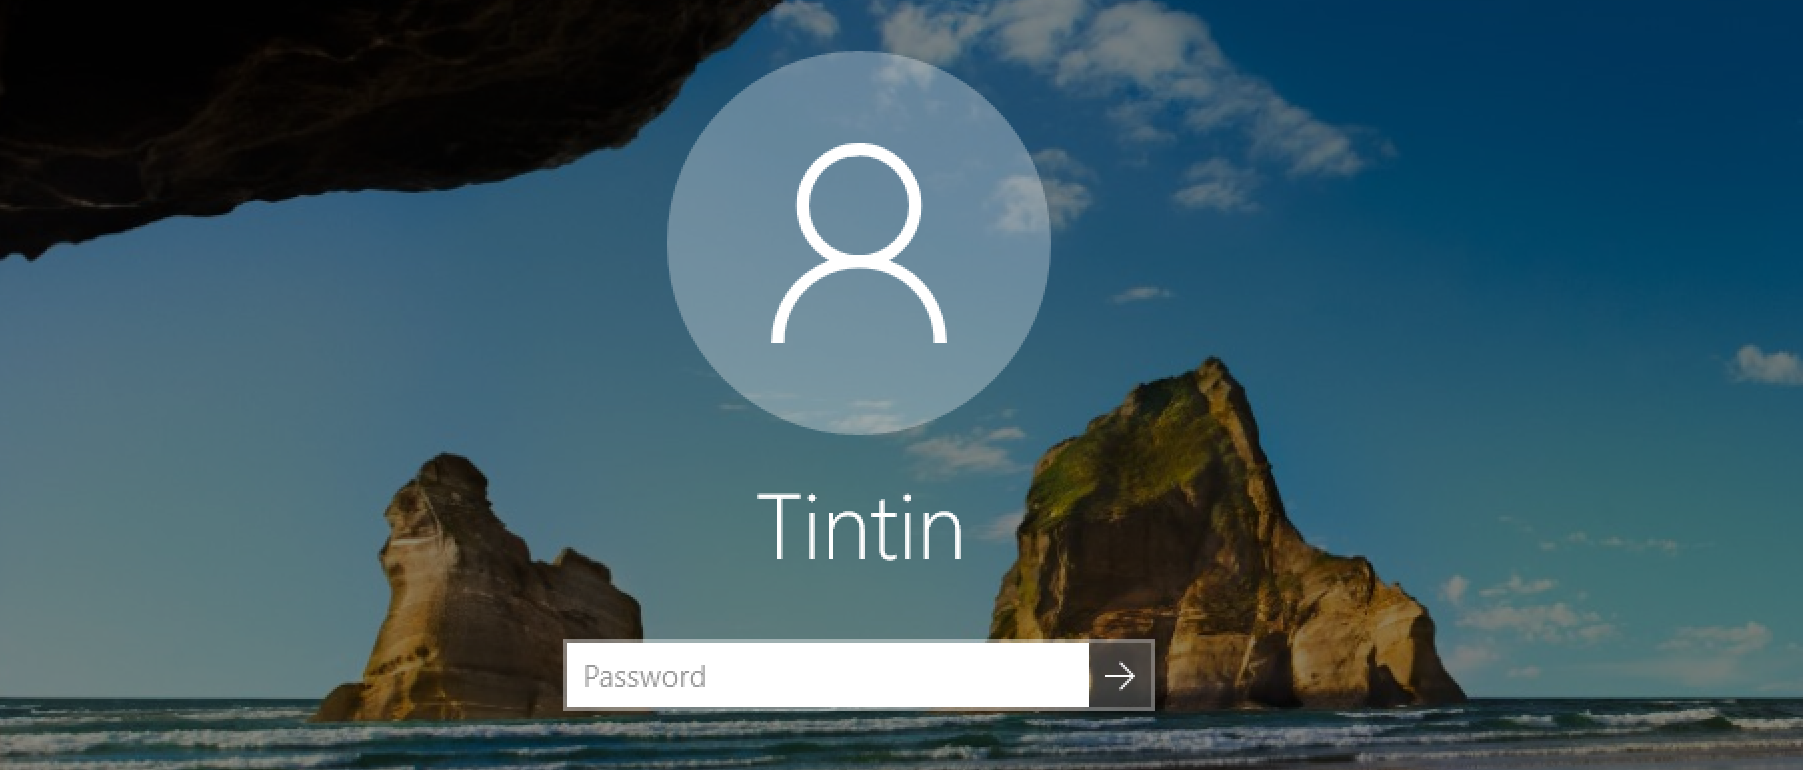 windows 10 login screen, default account photo picture